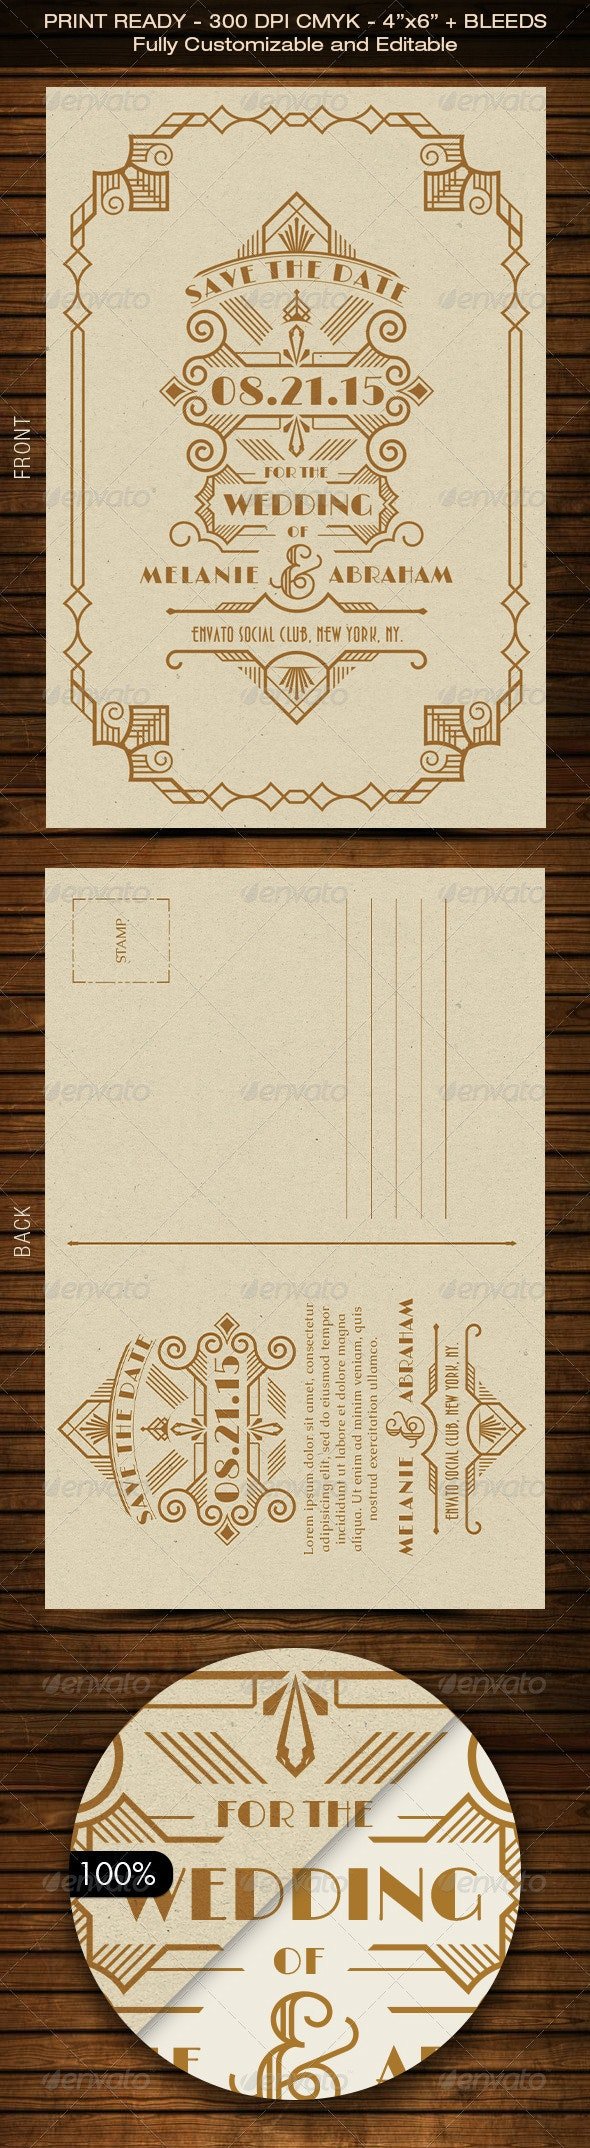 Wedding Save the Date Post Card - Art Deco 03 - Weddings Cards & Invites